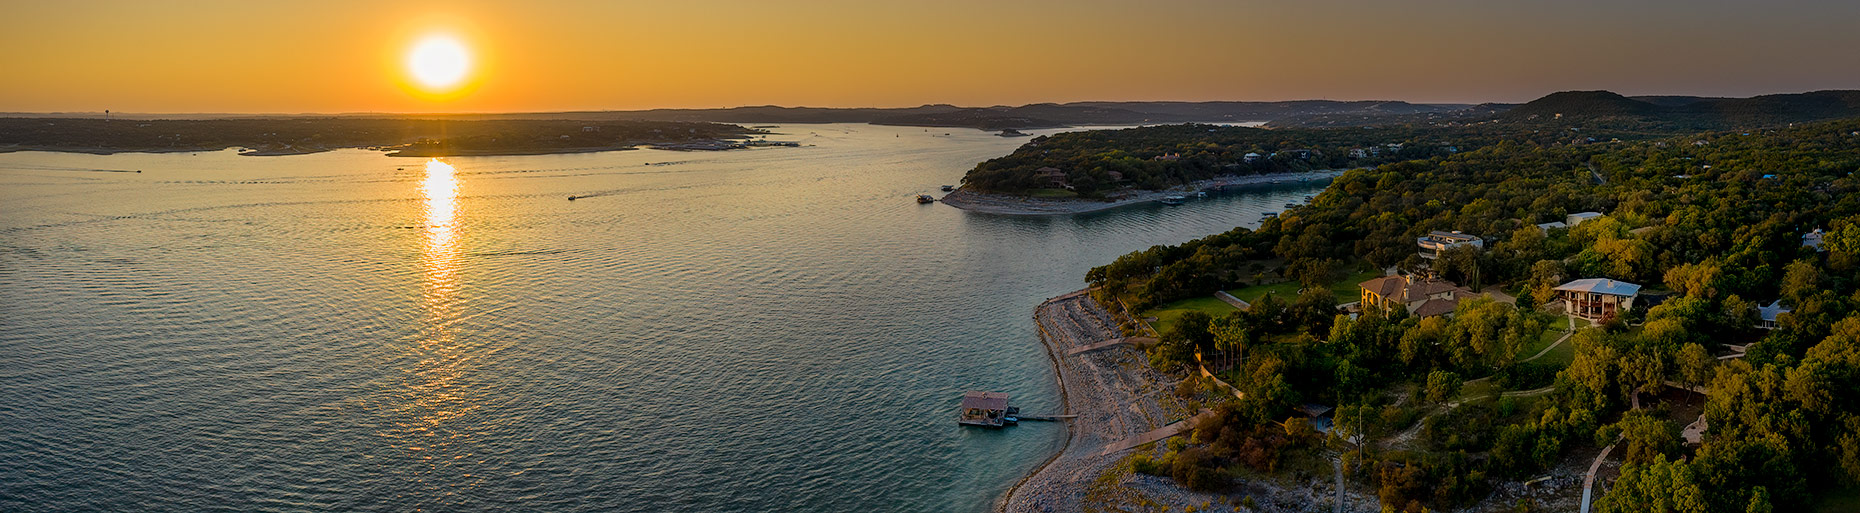 Aerial View of Lake Travis, from Volente, Texas on The Northern Shore